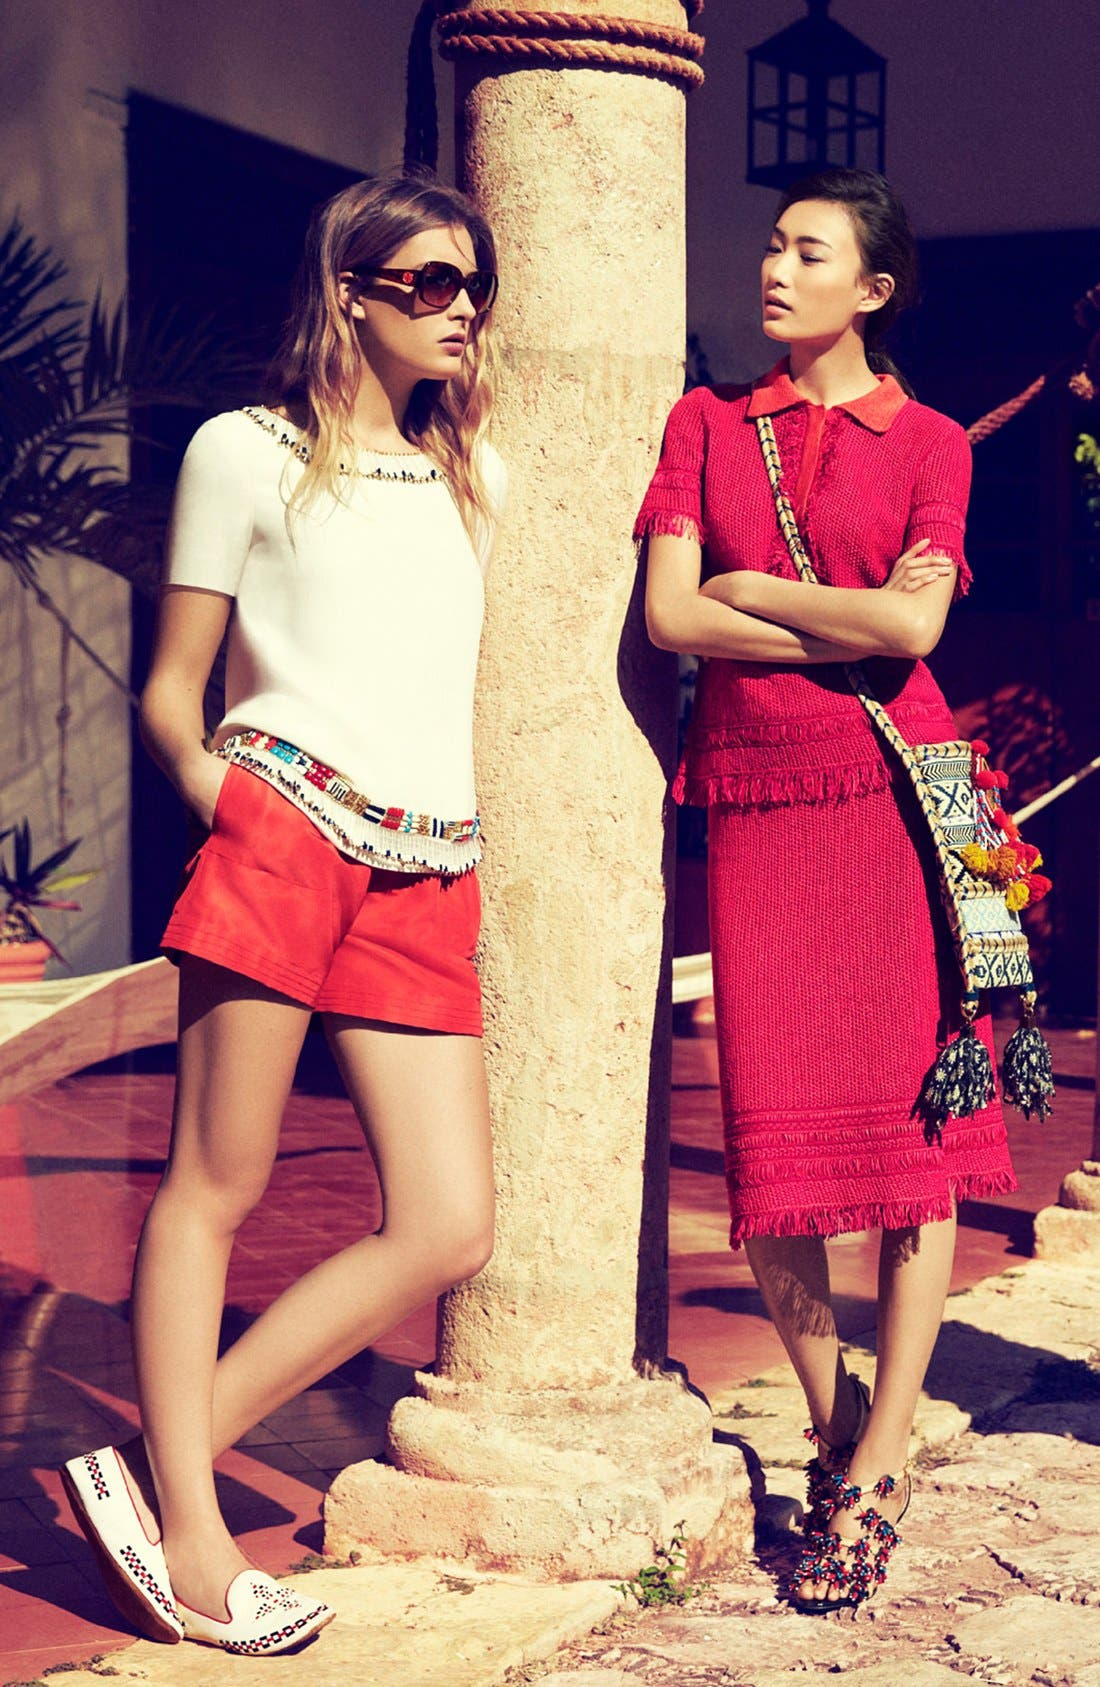 Alternate Image 1 Selected - Tory Burch Shorts Outfit & Skirt Outfit